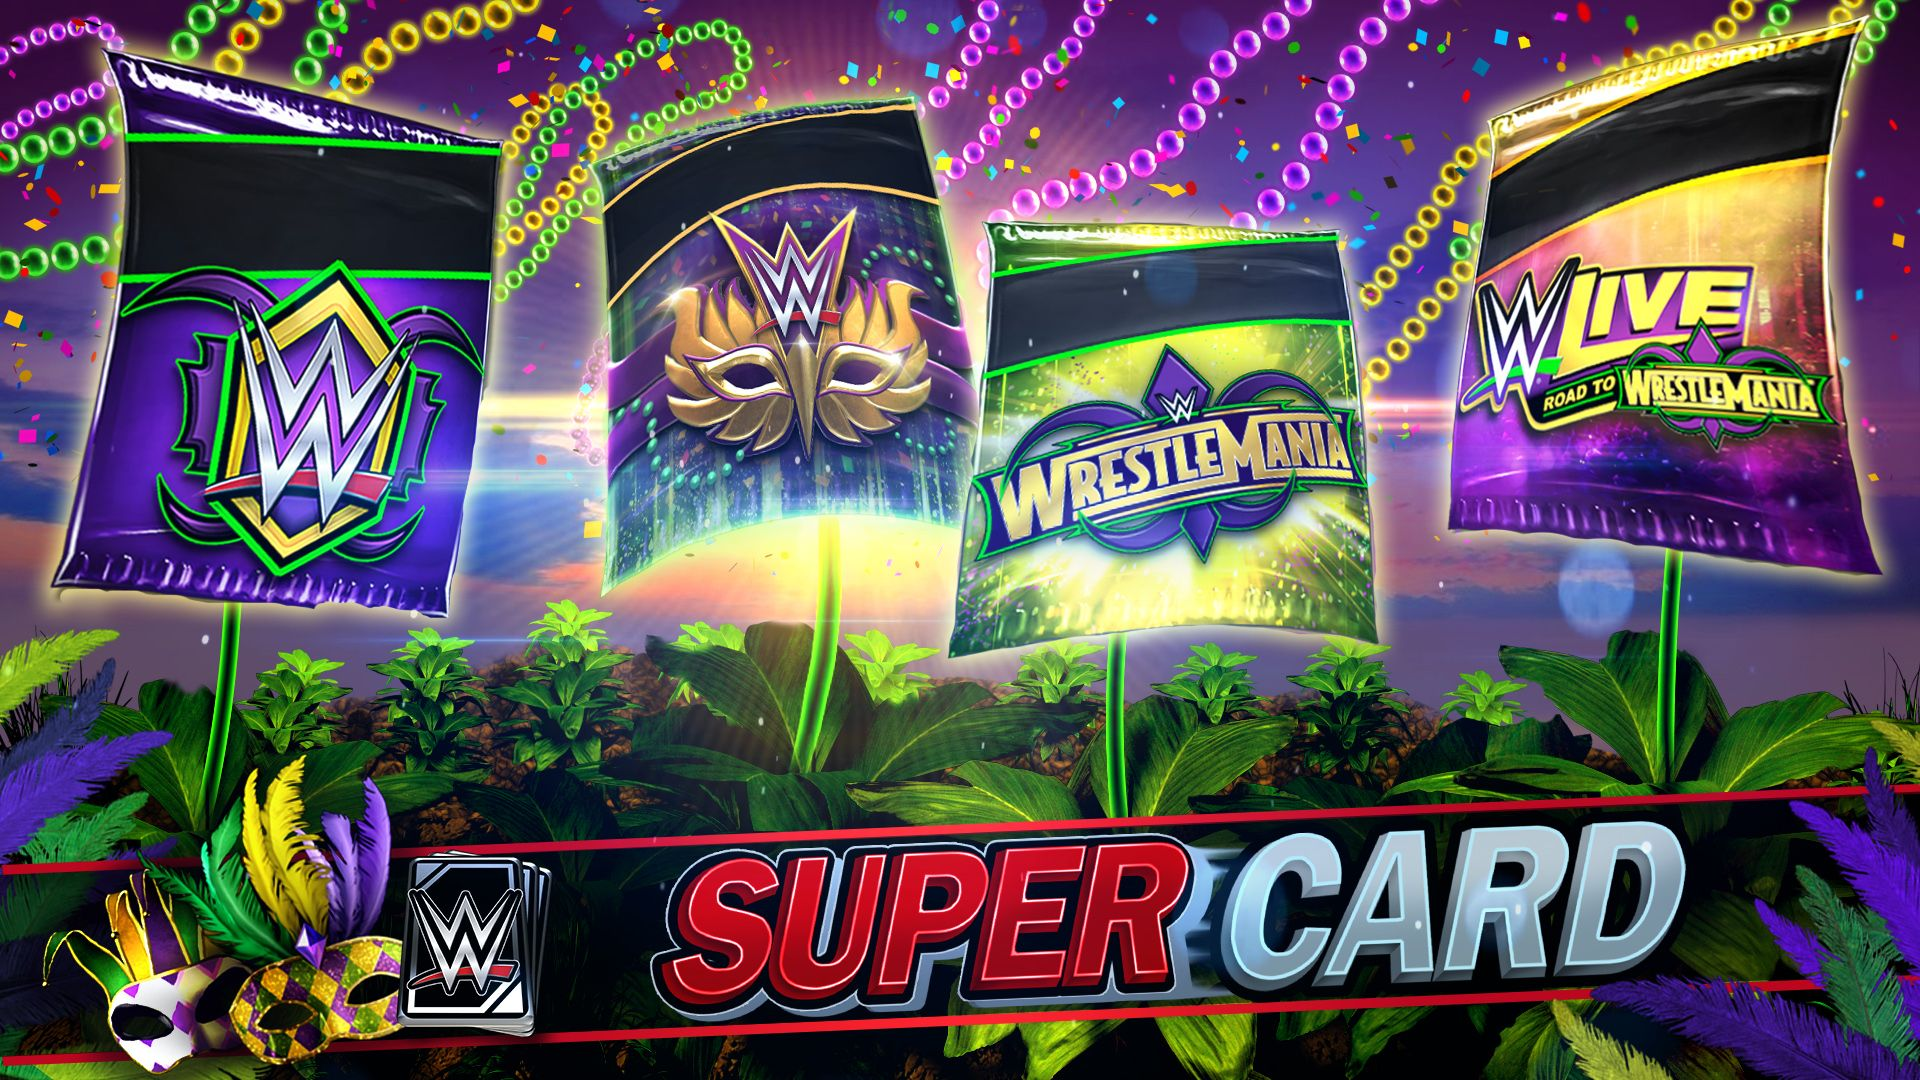 Wwe Supercard News Spring Into The Ring Again Wrestlemania